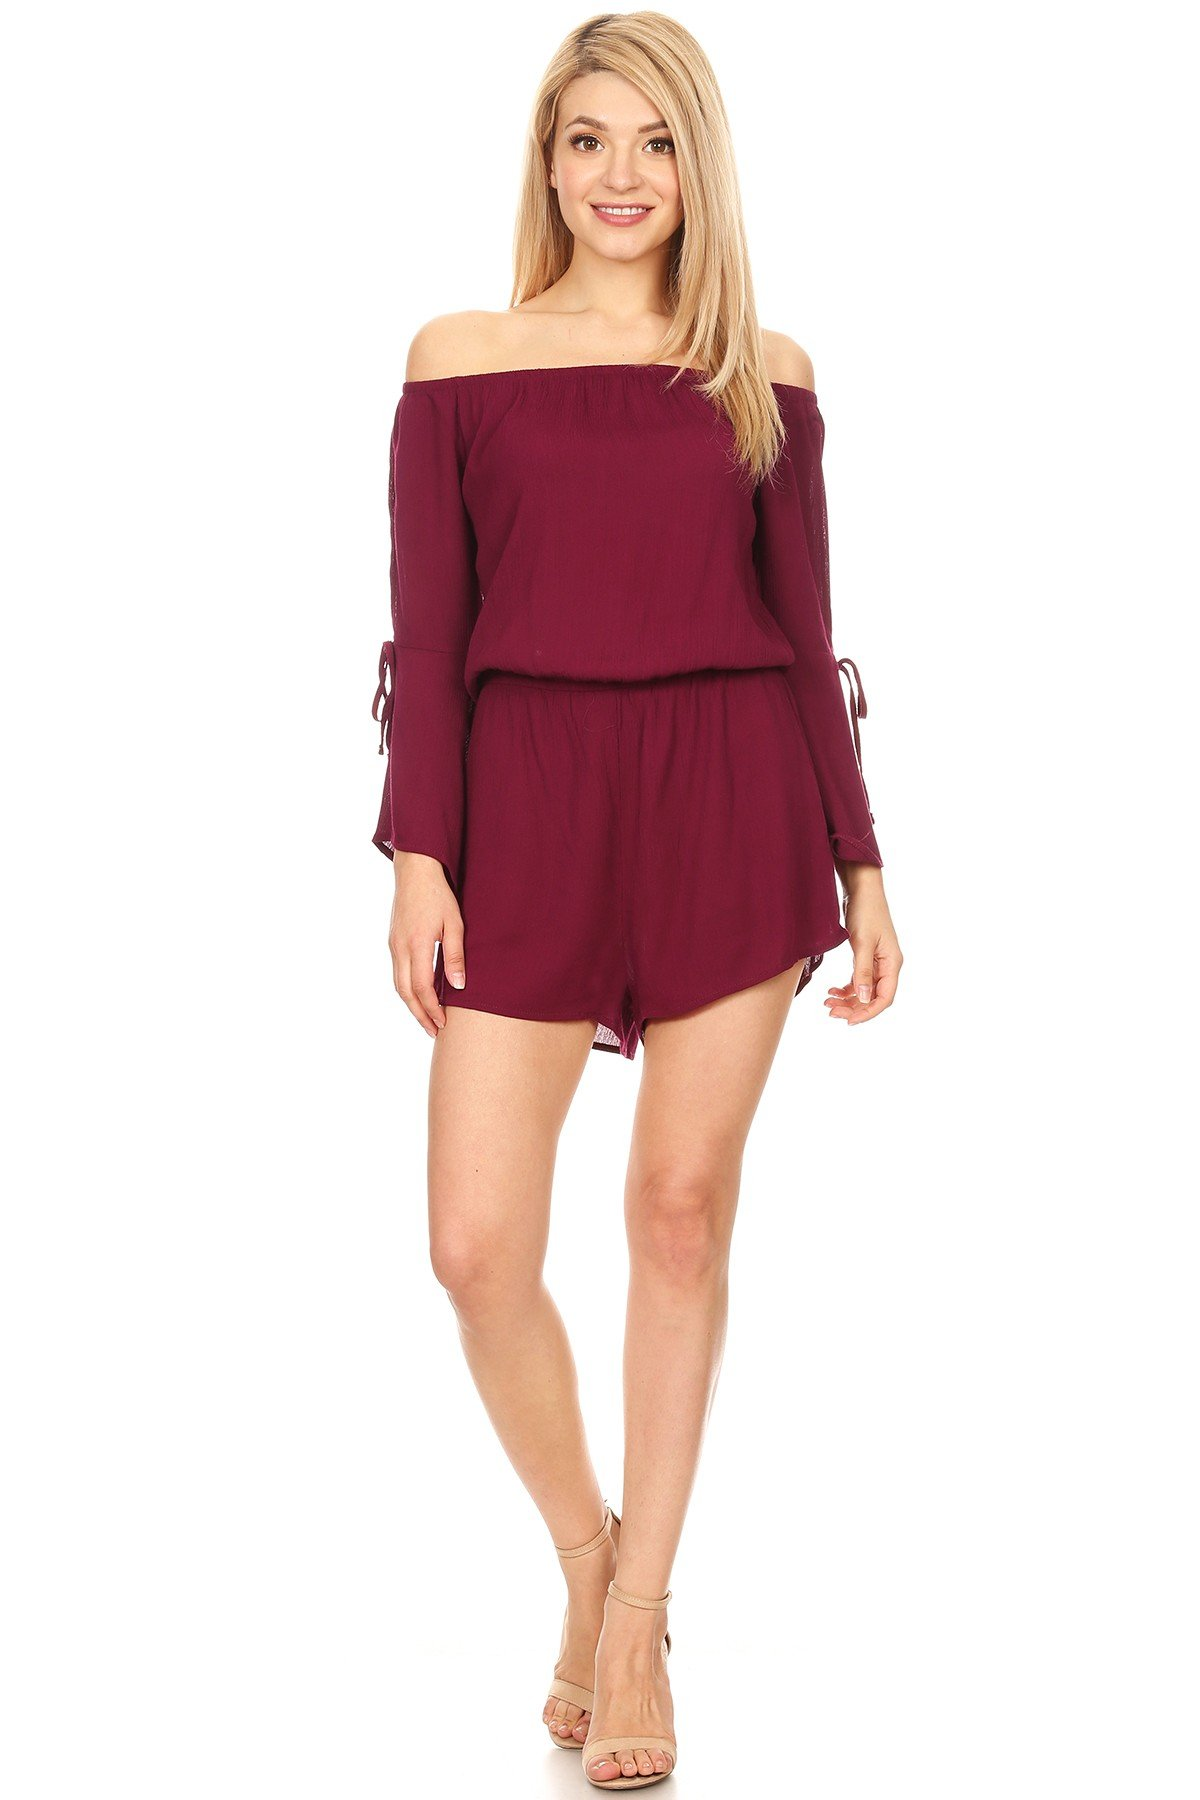 Ambiance Apparel Sexy Solid Off-Shoulder Long Sleeves Romper for Women's (Medium, Burgandy)